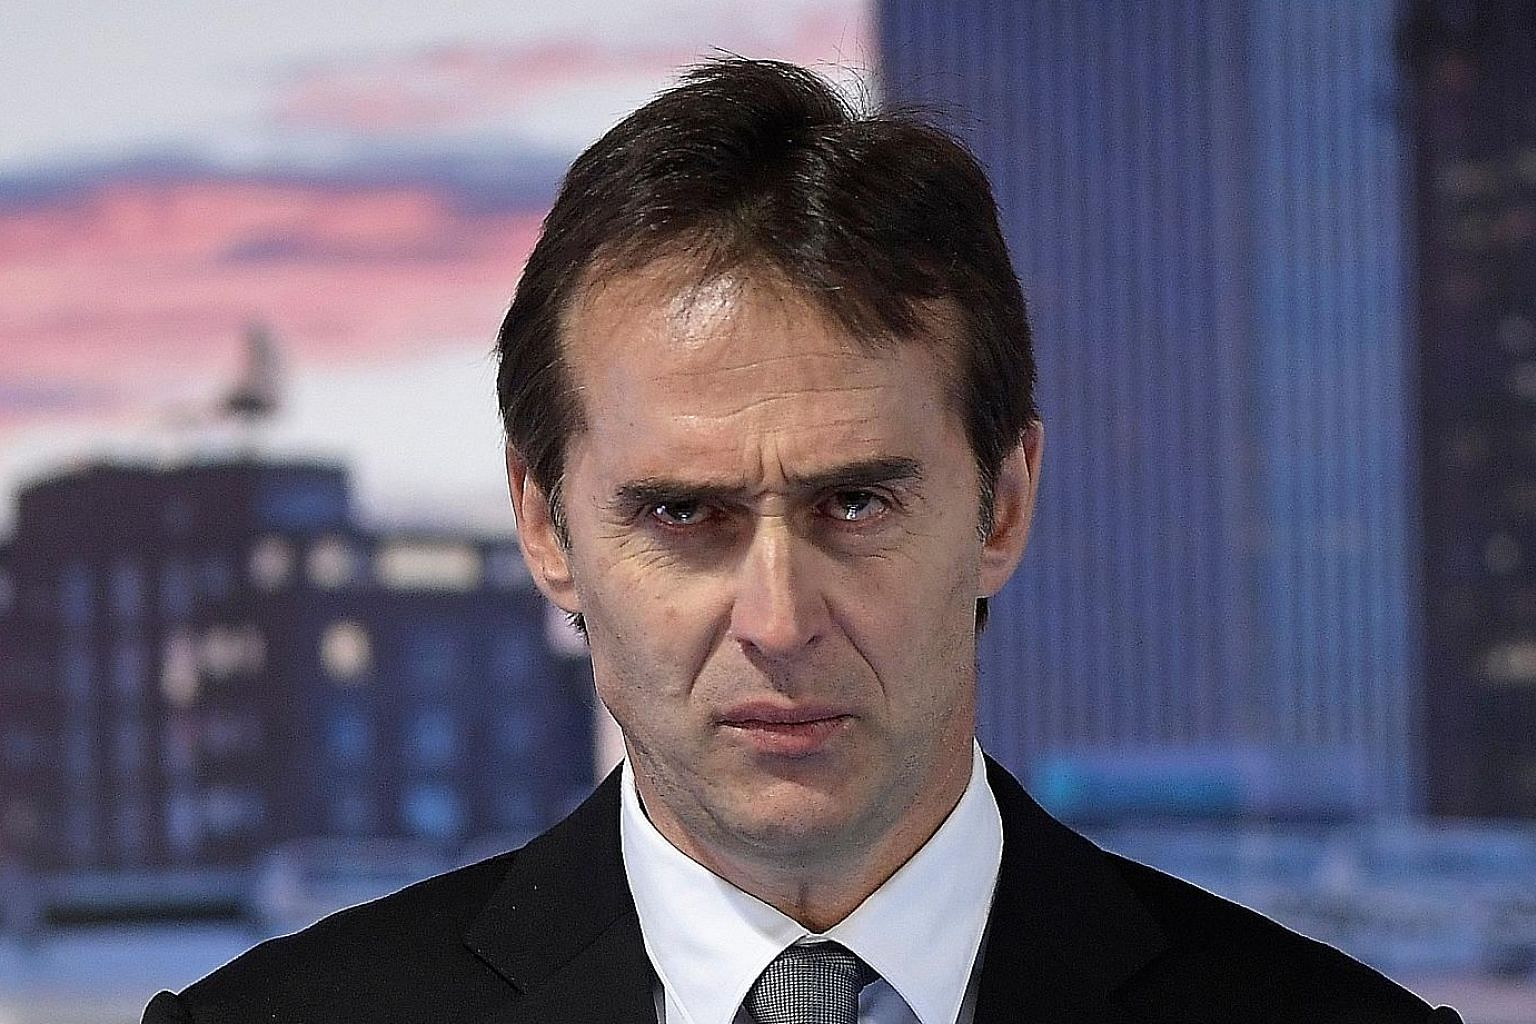 New Real Madrid coach Julen Lopetegui with tears welling up in his eyes while speaking at the Santiago Bernabeu on Thursday.